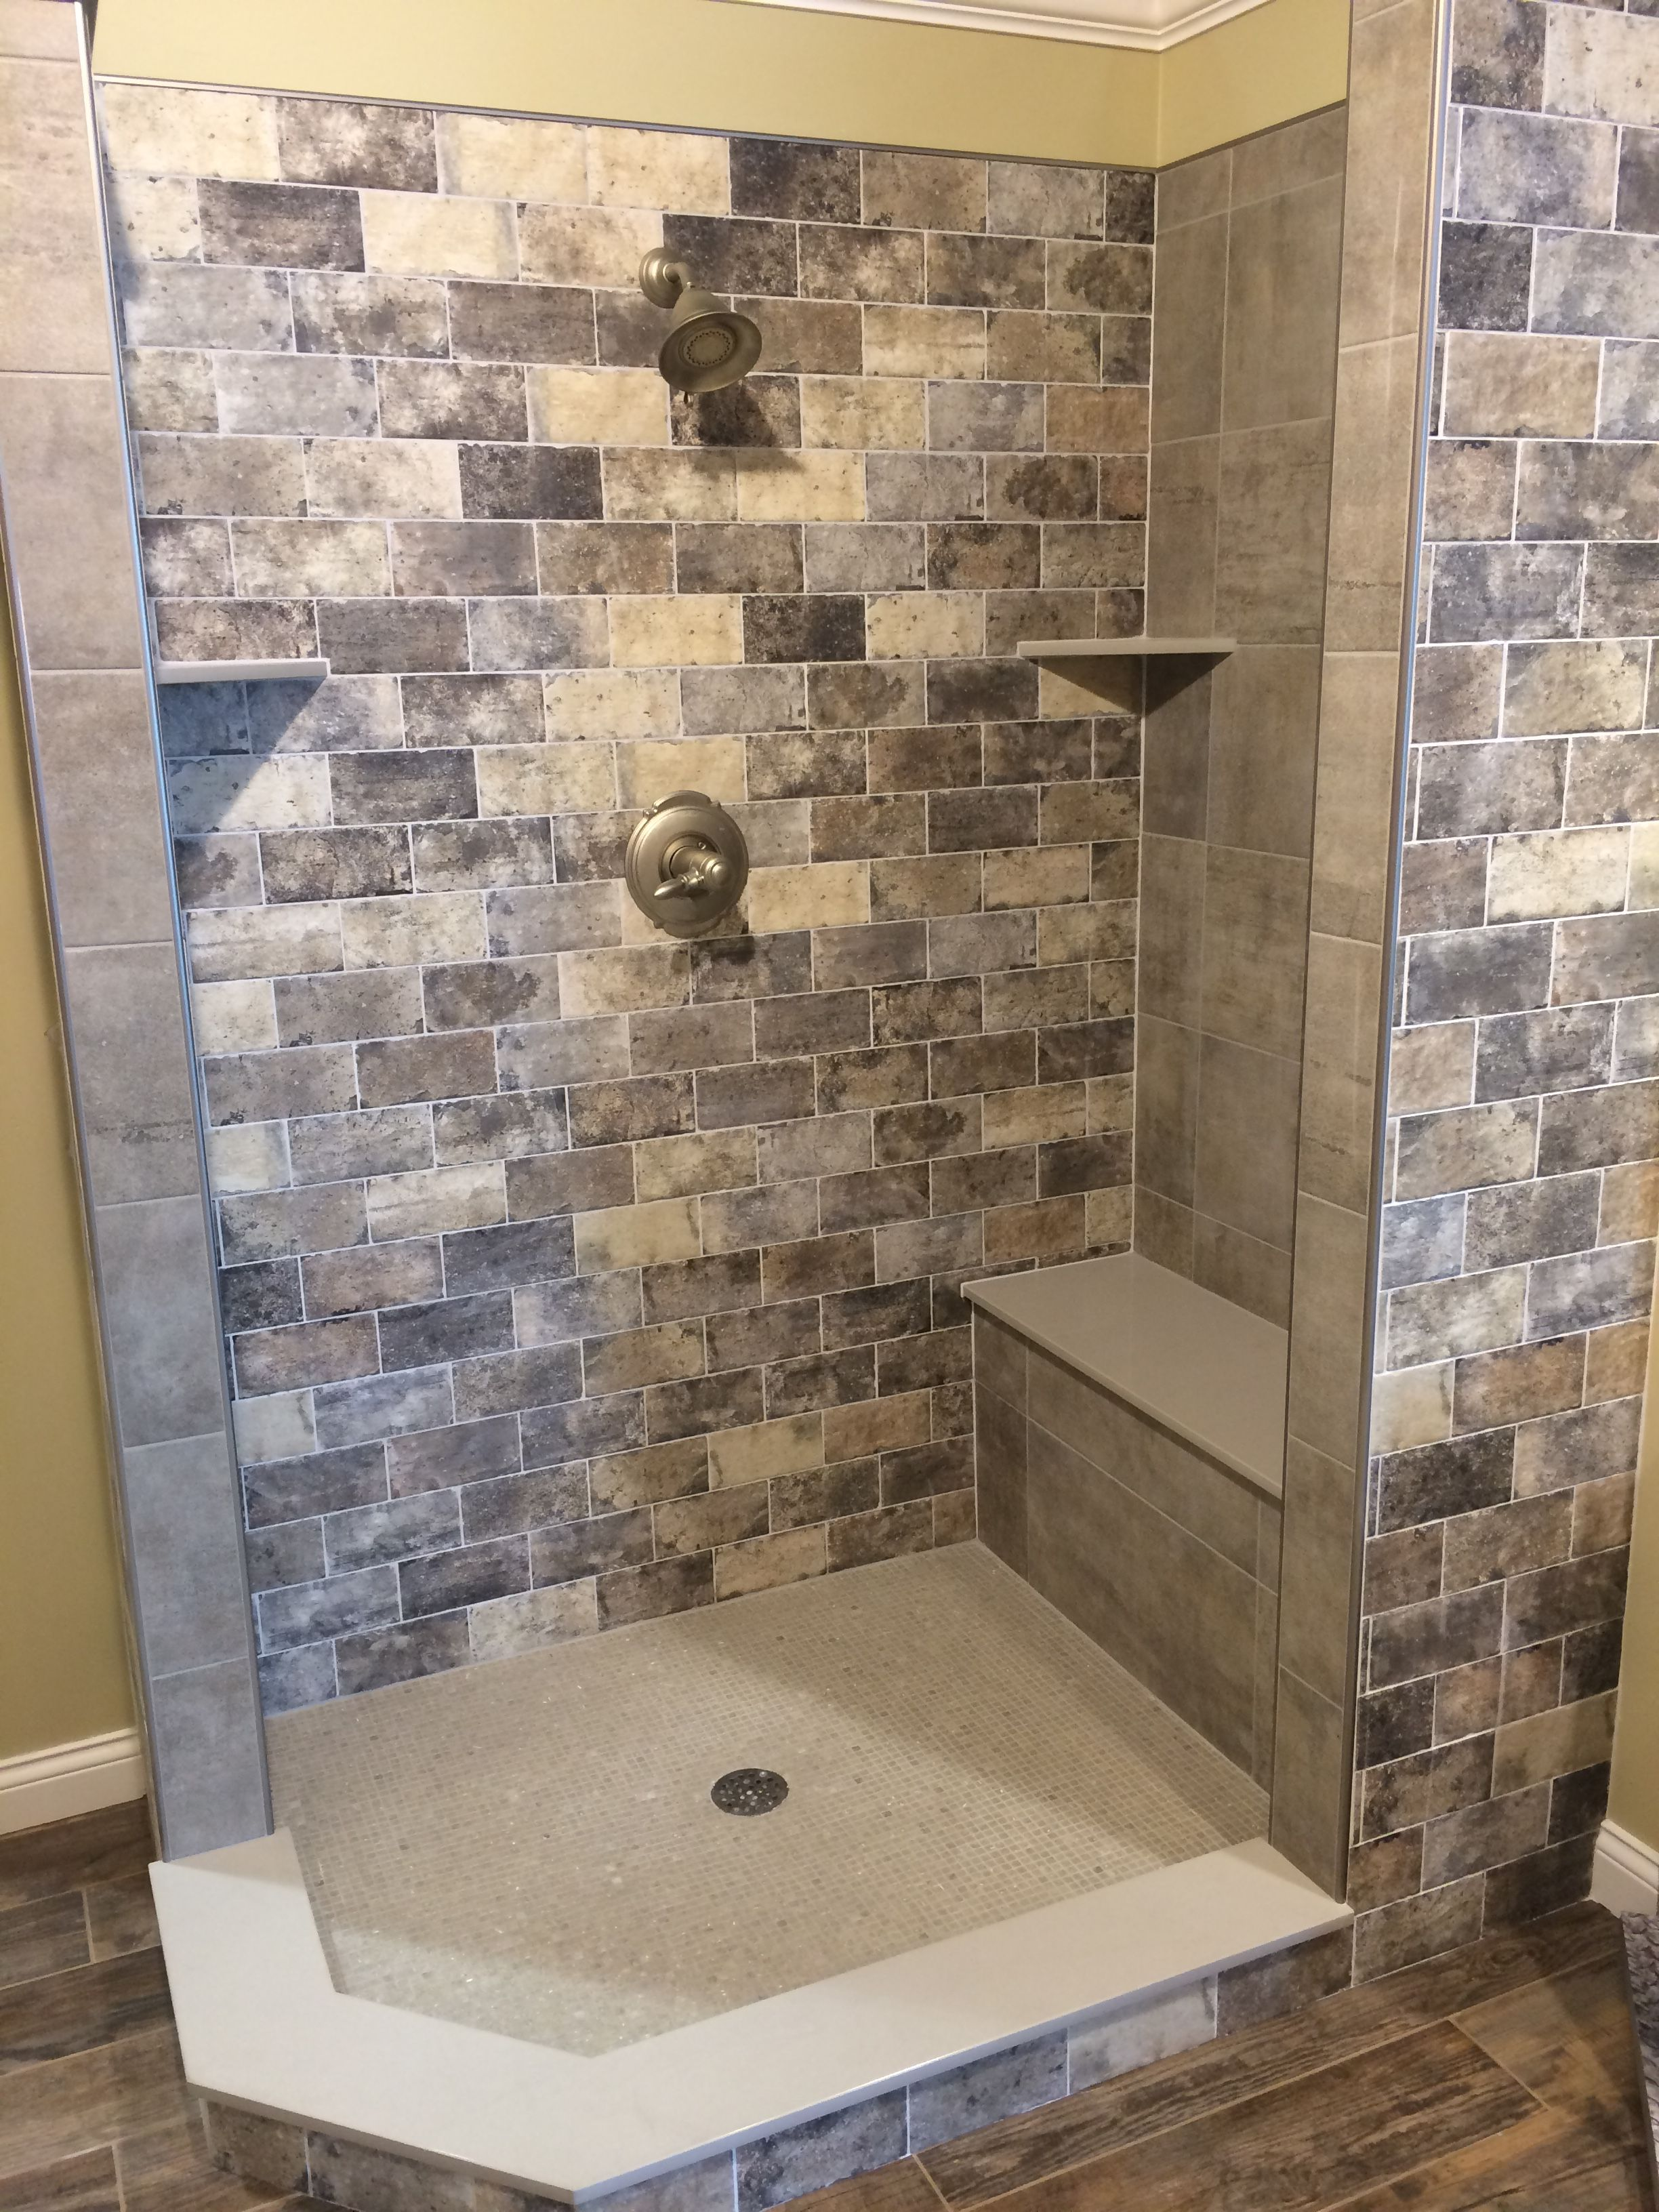 Another Awesome Shower Design By Our Own Jesse Lewellyn Featuring The New York Brick Look In The